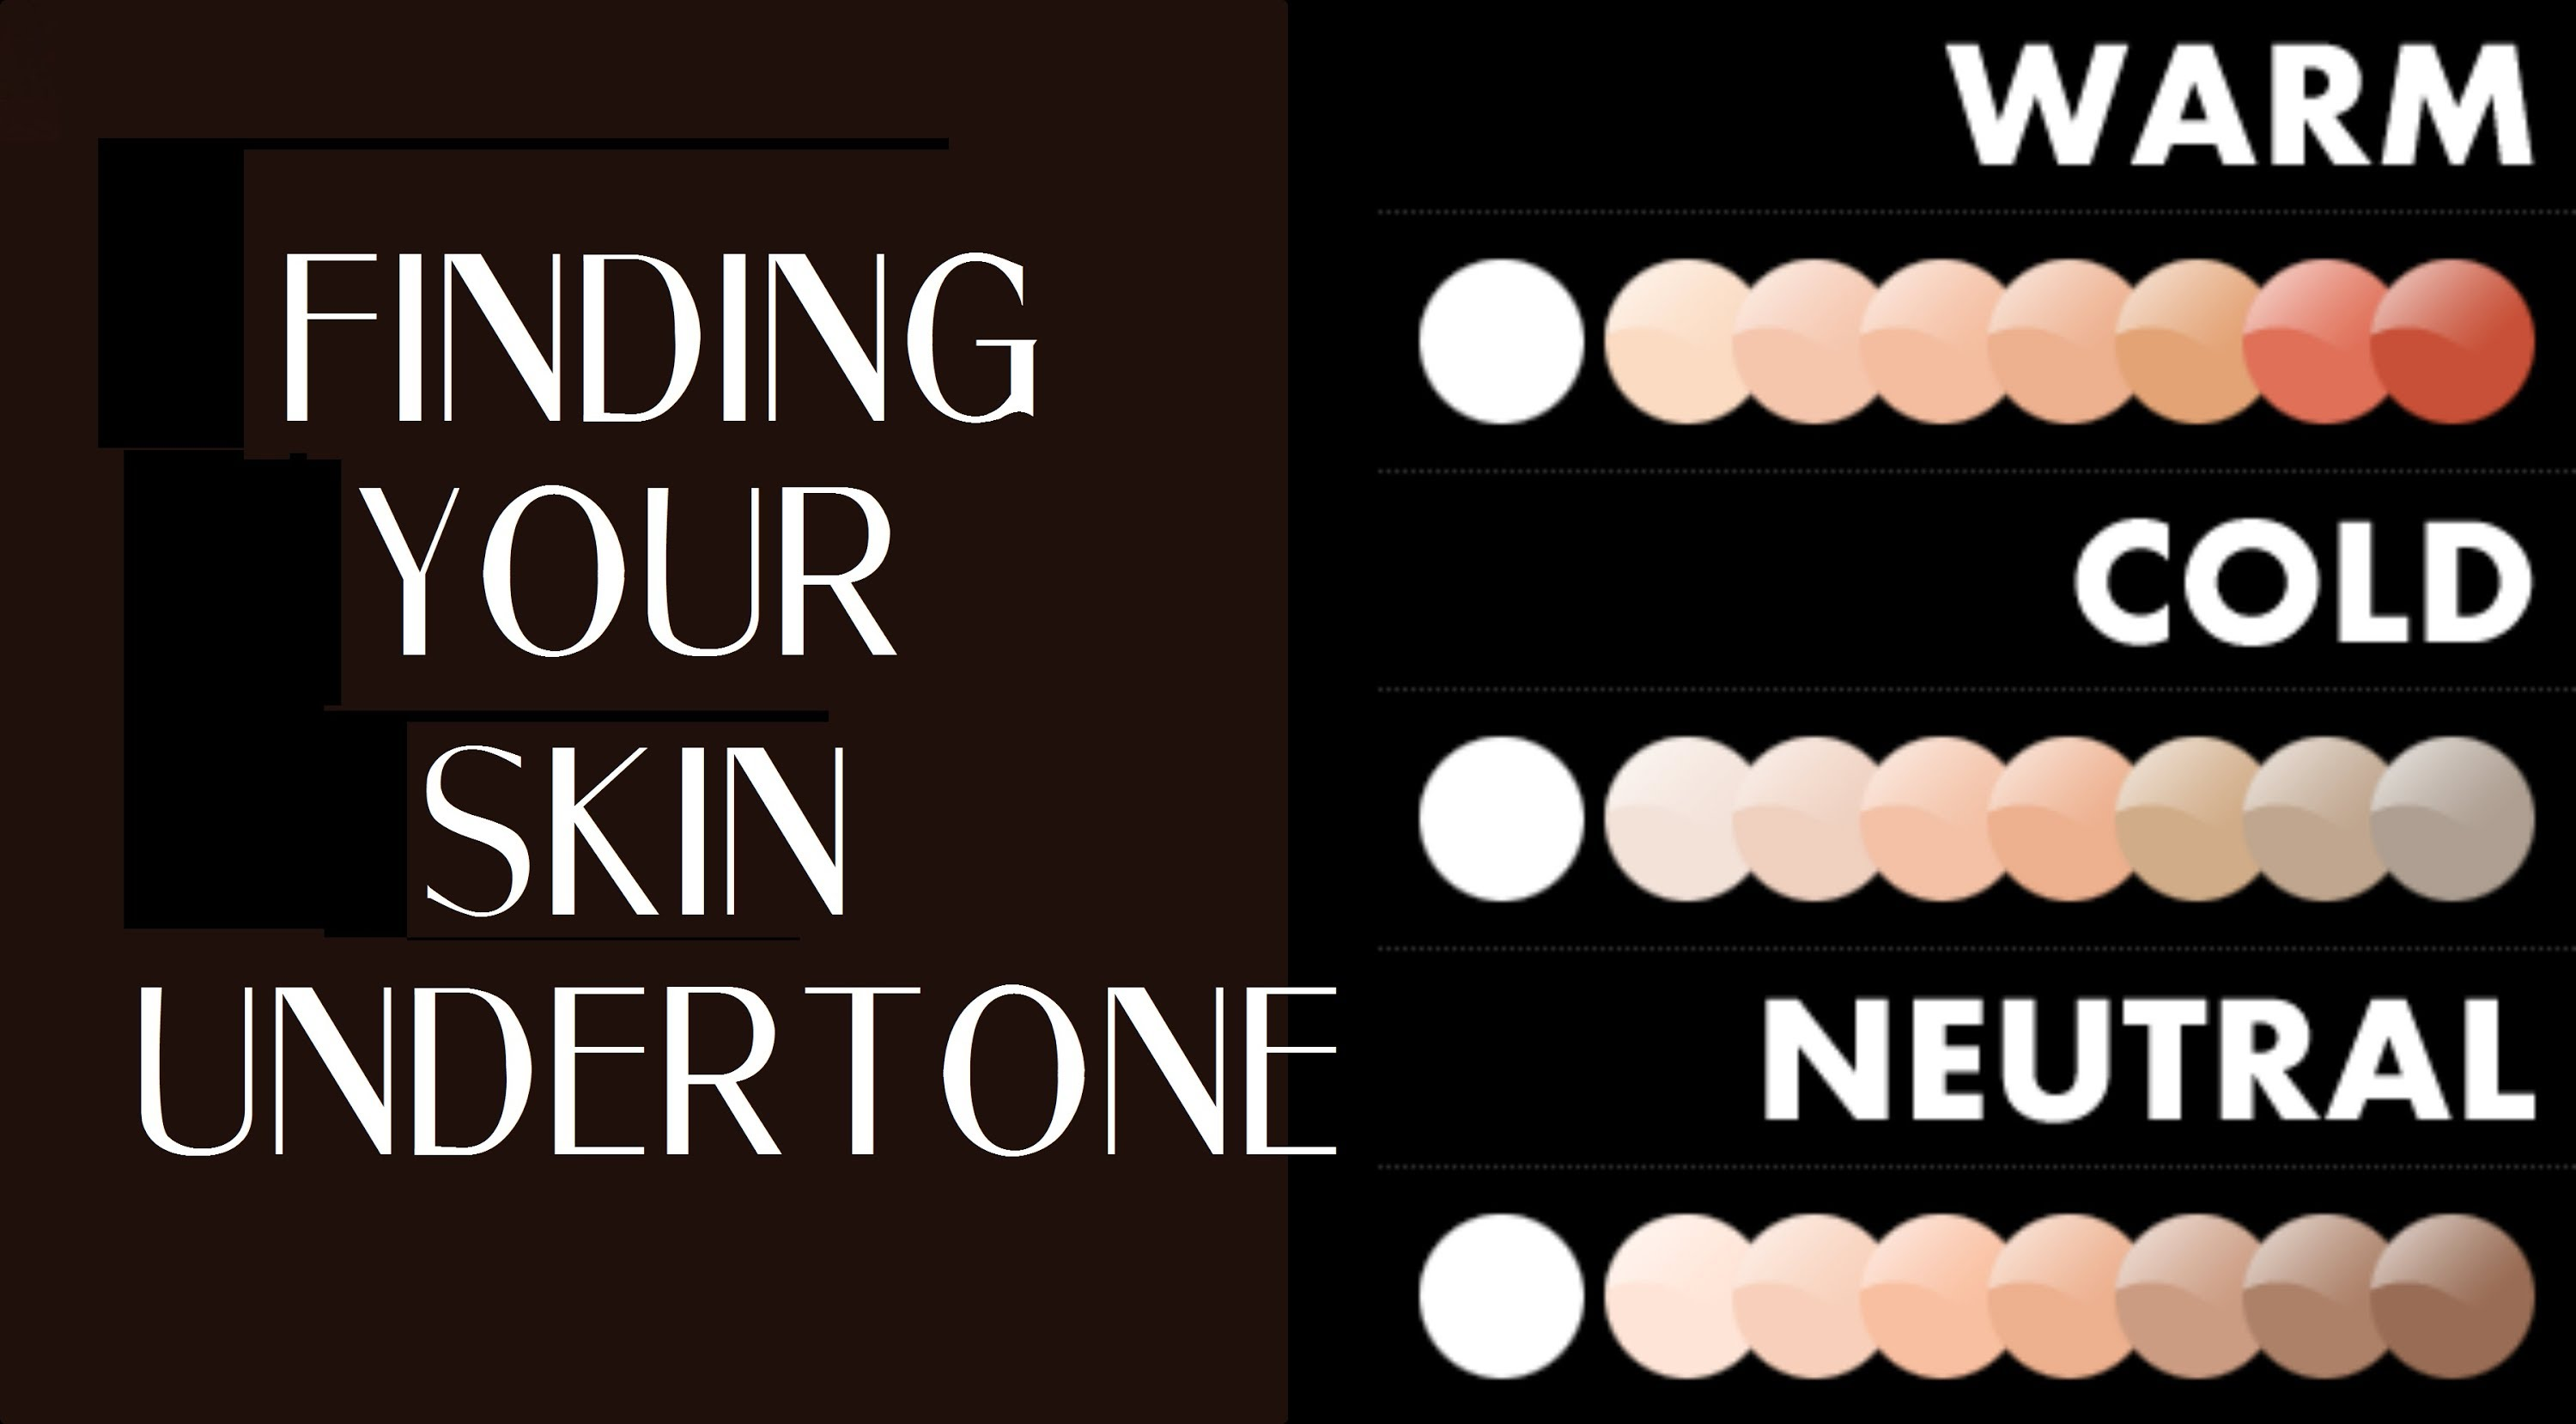 how-to-choose-lipstick-color-according-to-skin-color-6